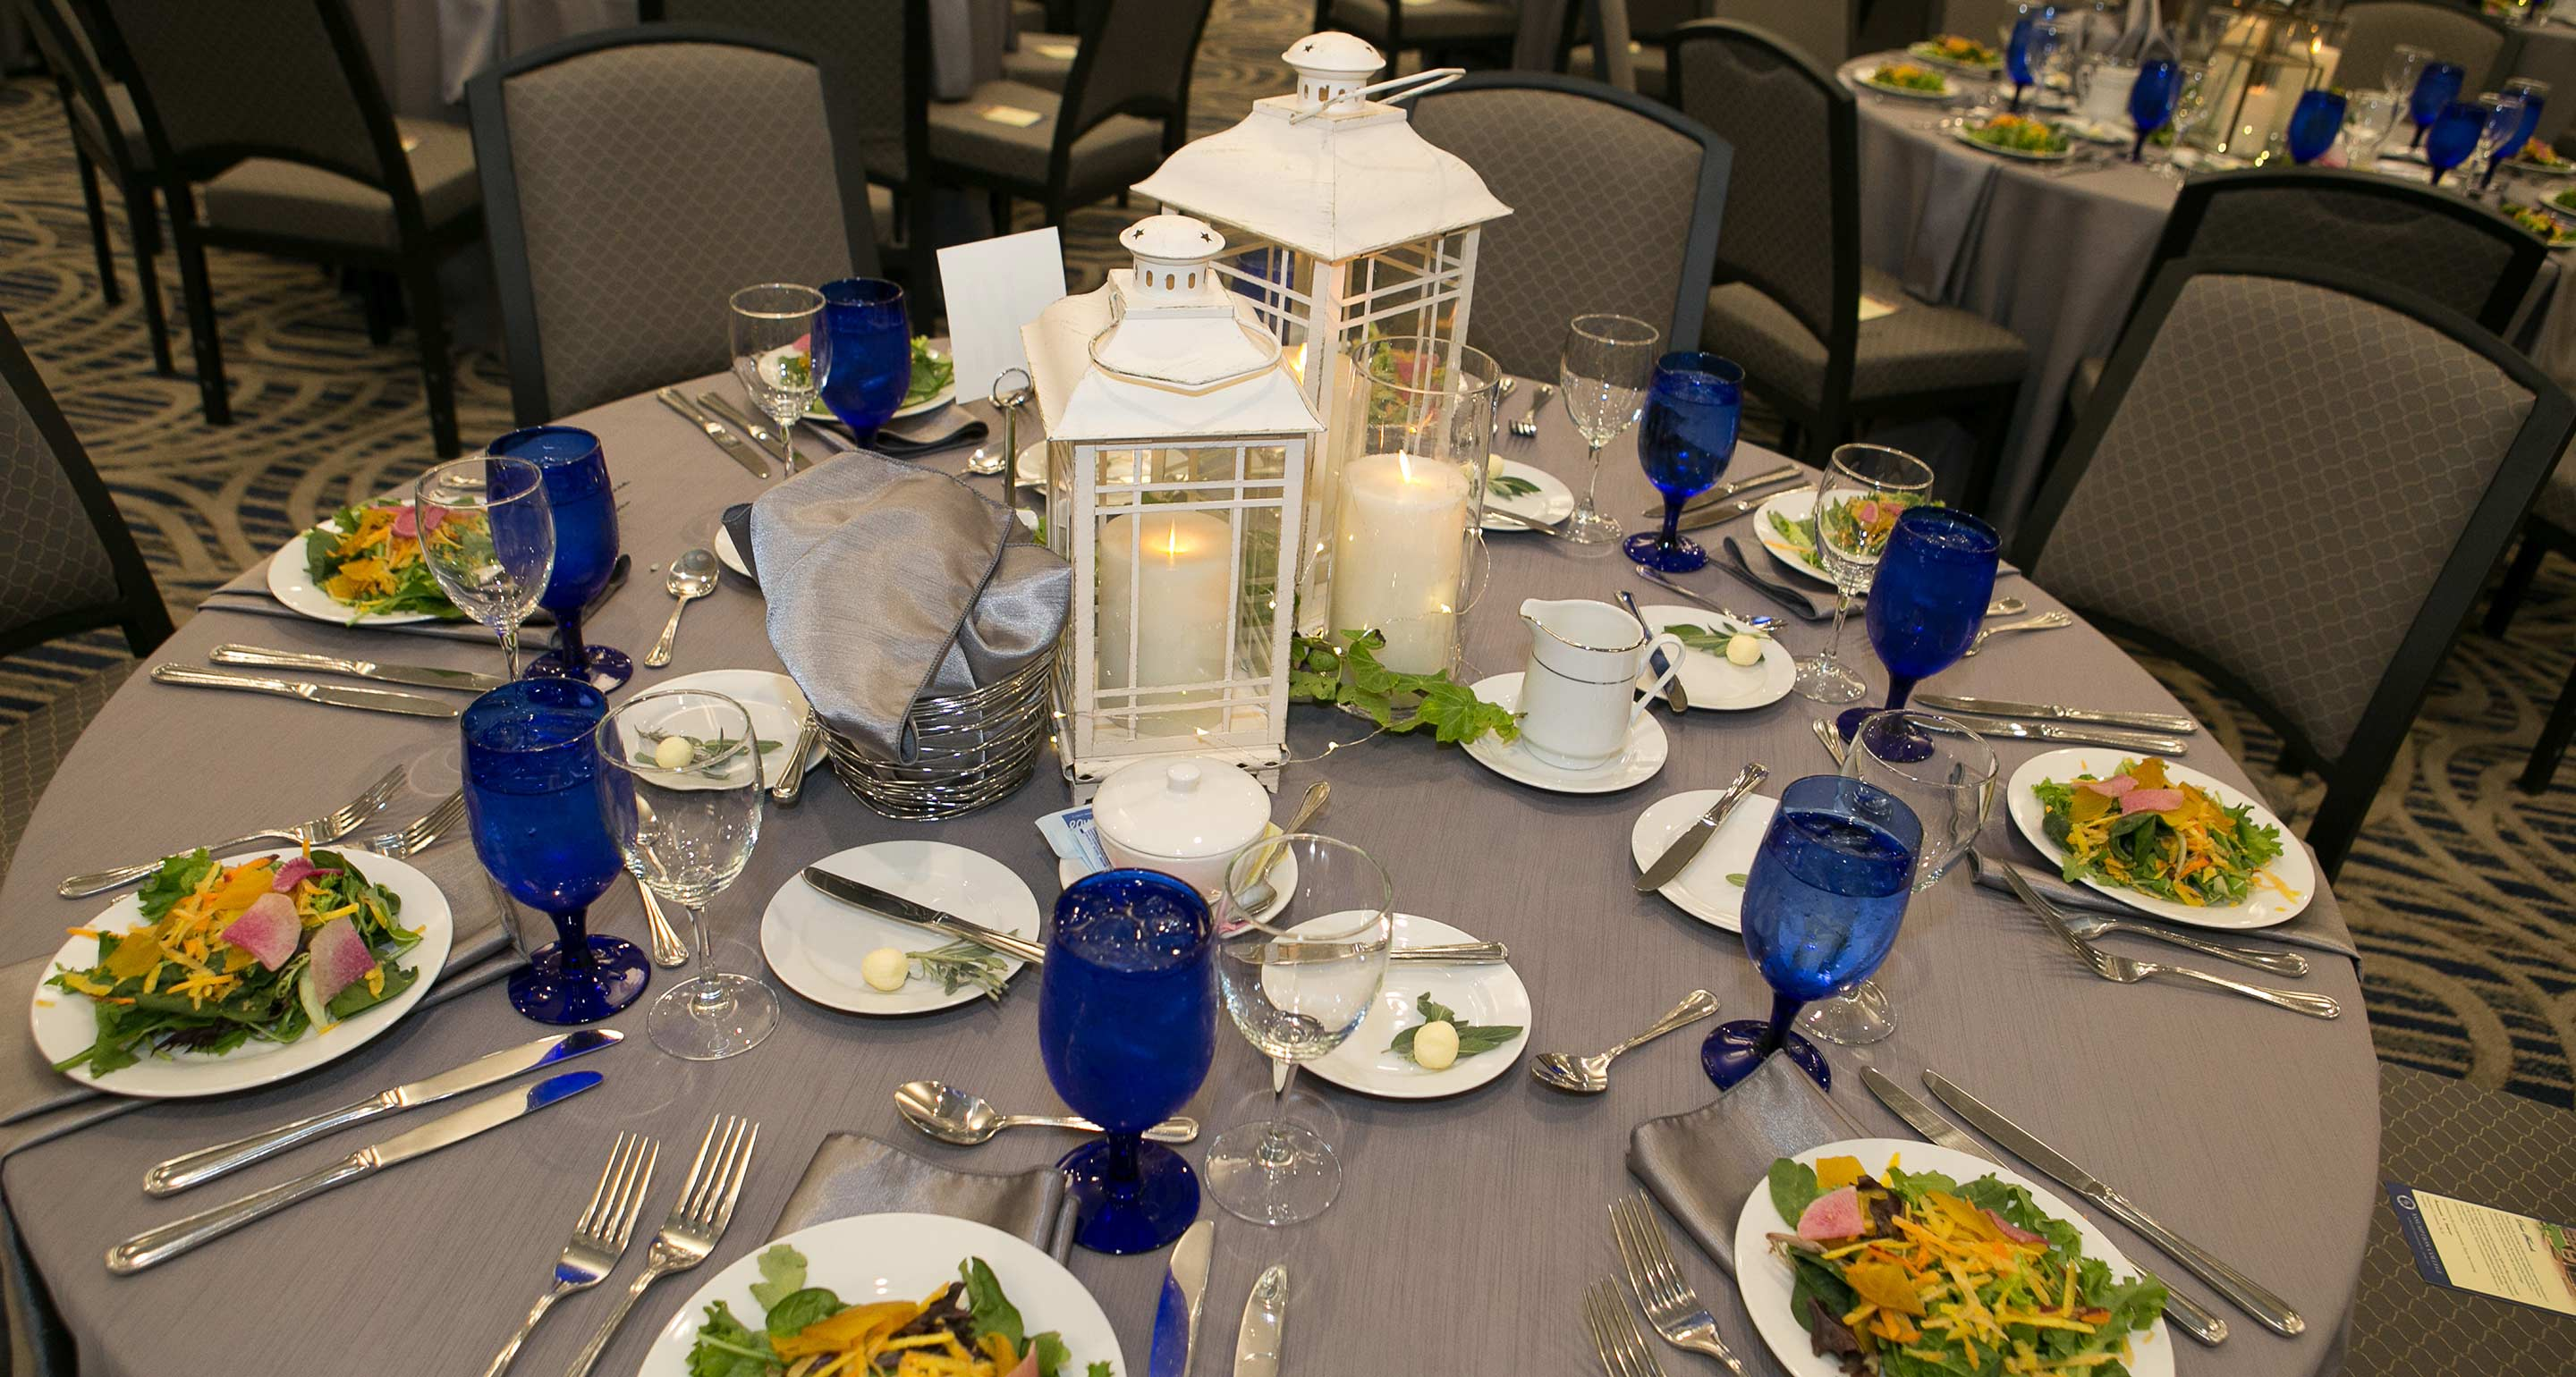 A table set for dinner in the 350-seat ballroom of the Tsotsis Family Academic Center on the campus of Assumption College.